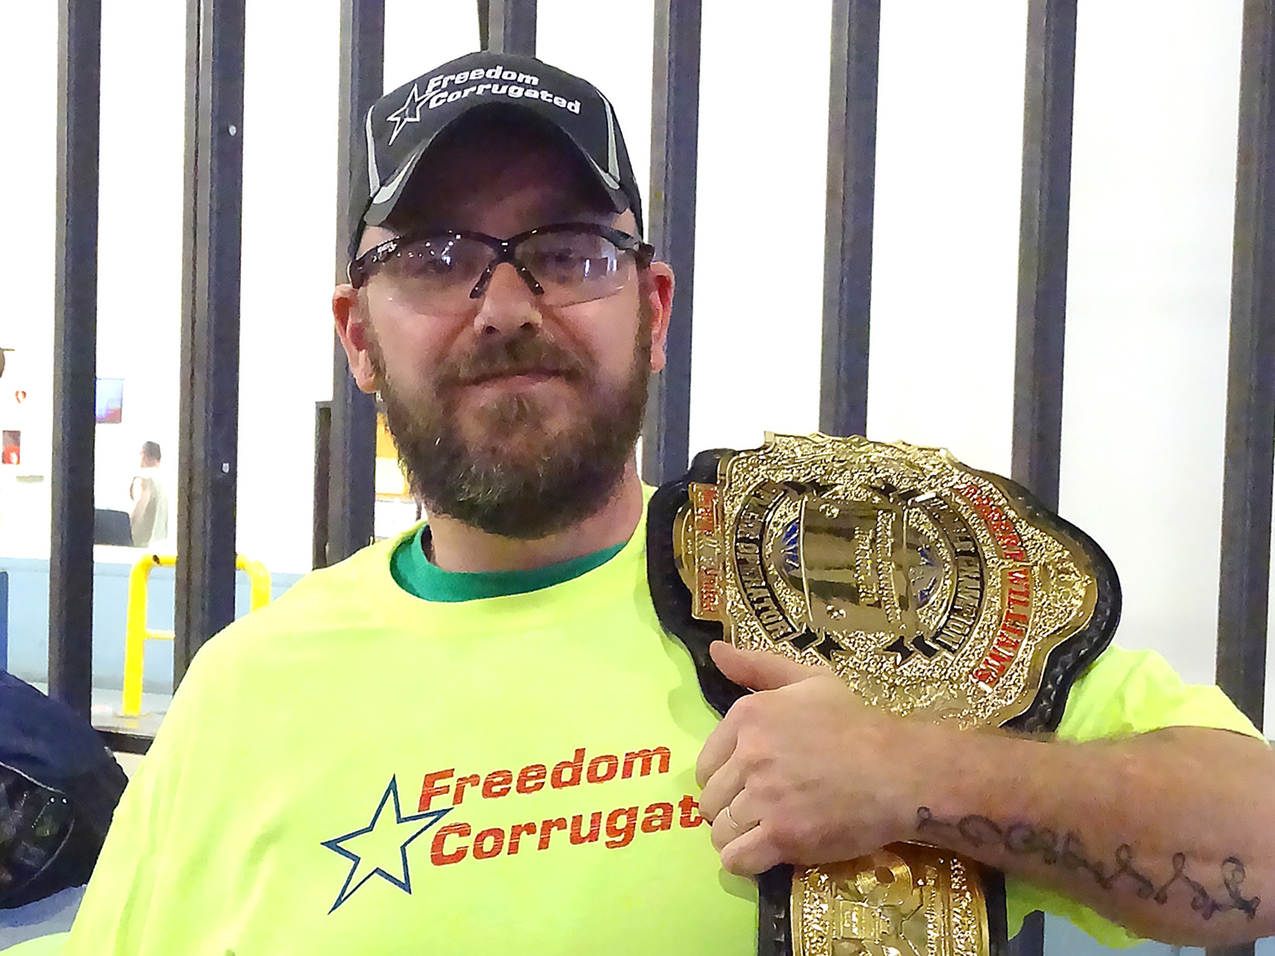 Robert Williams, Freedom Corrugated, is new splicer champion